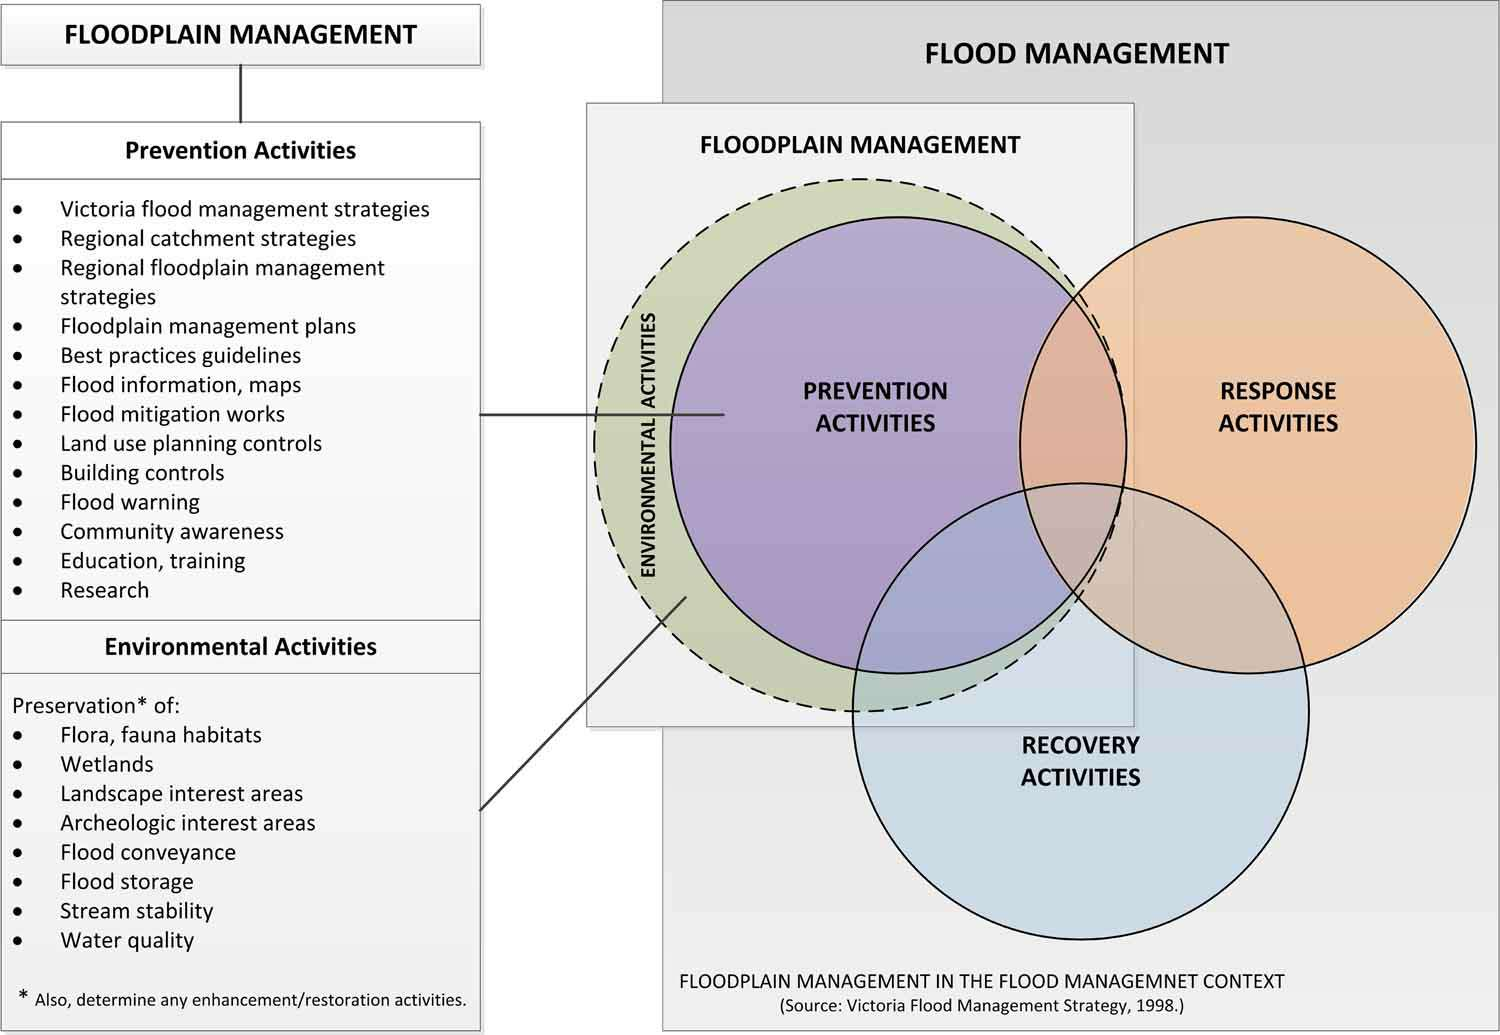 Floodplain Management in the Flood Management Context